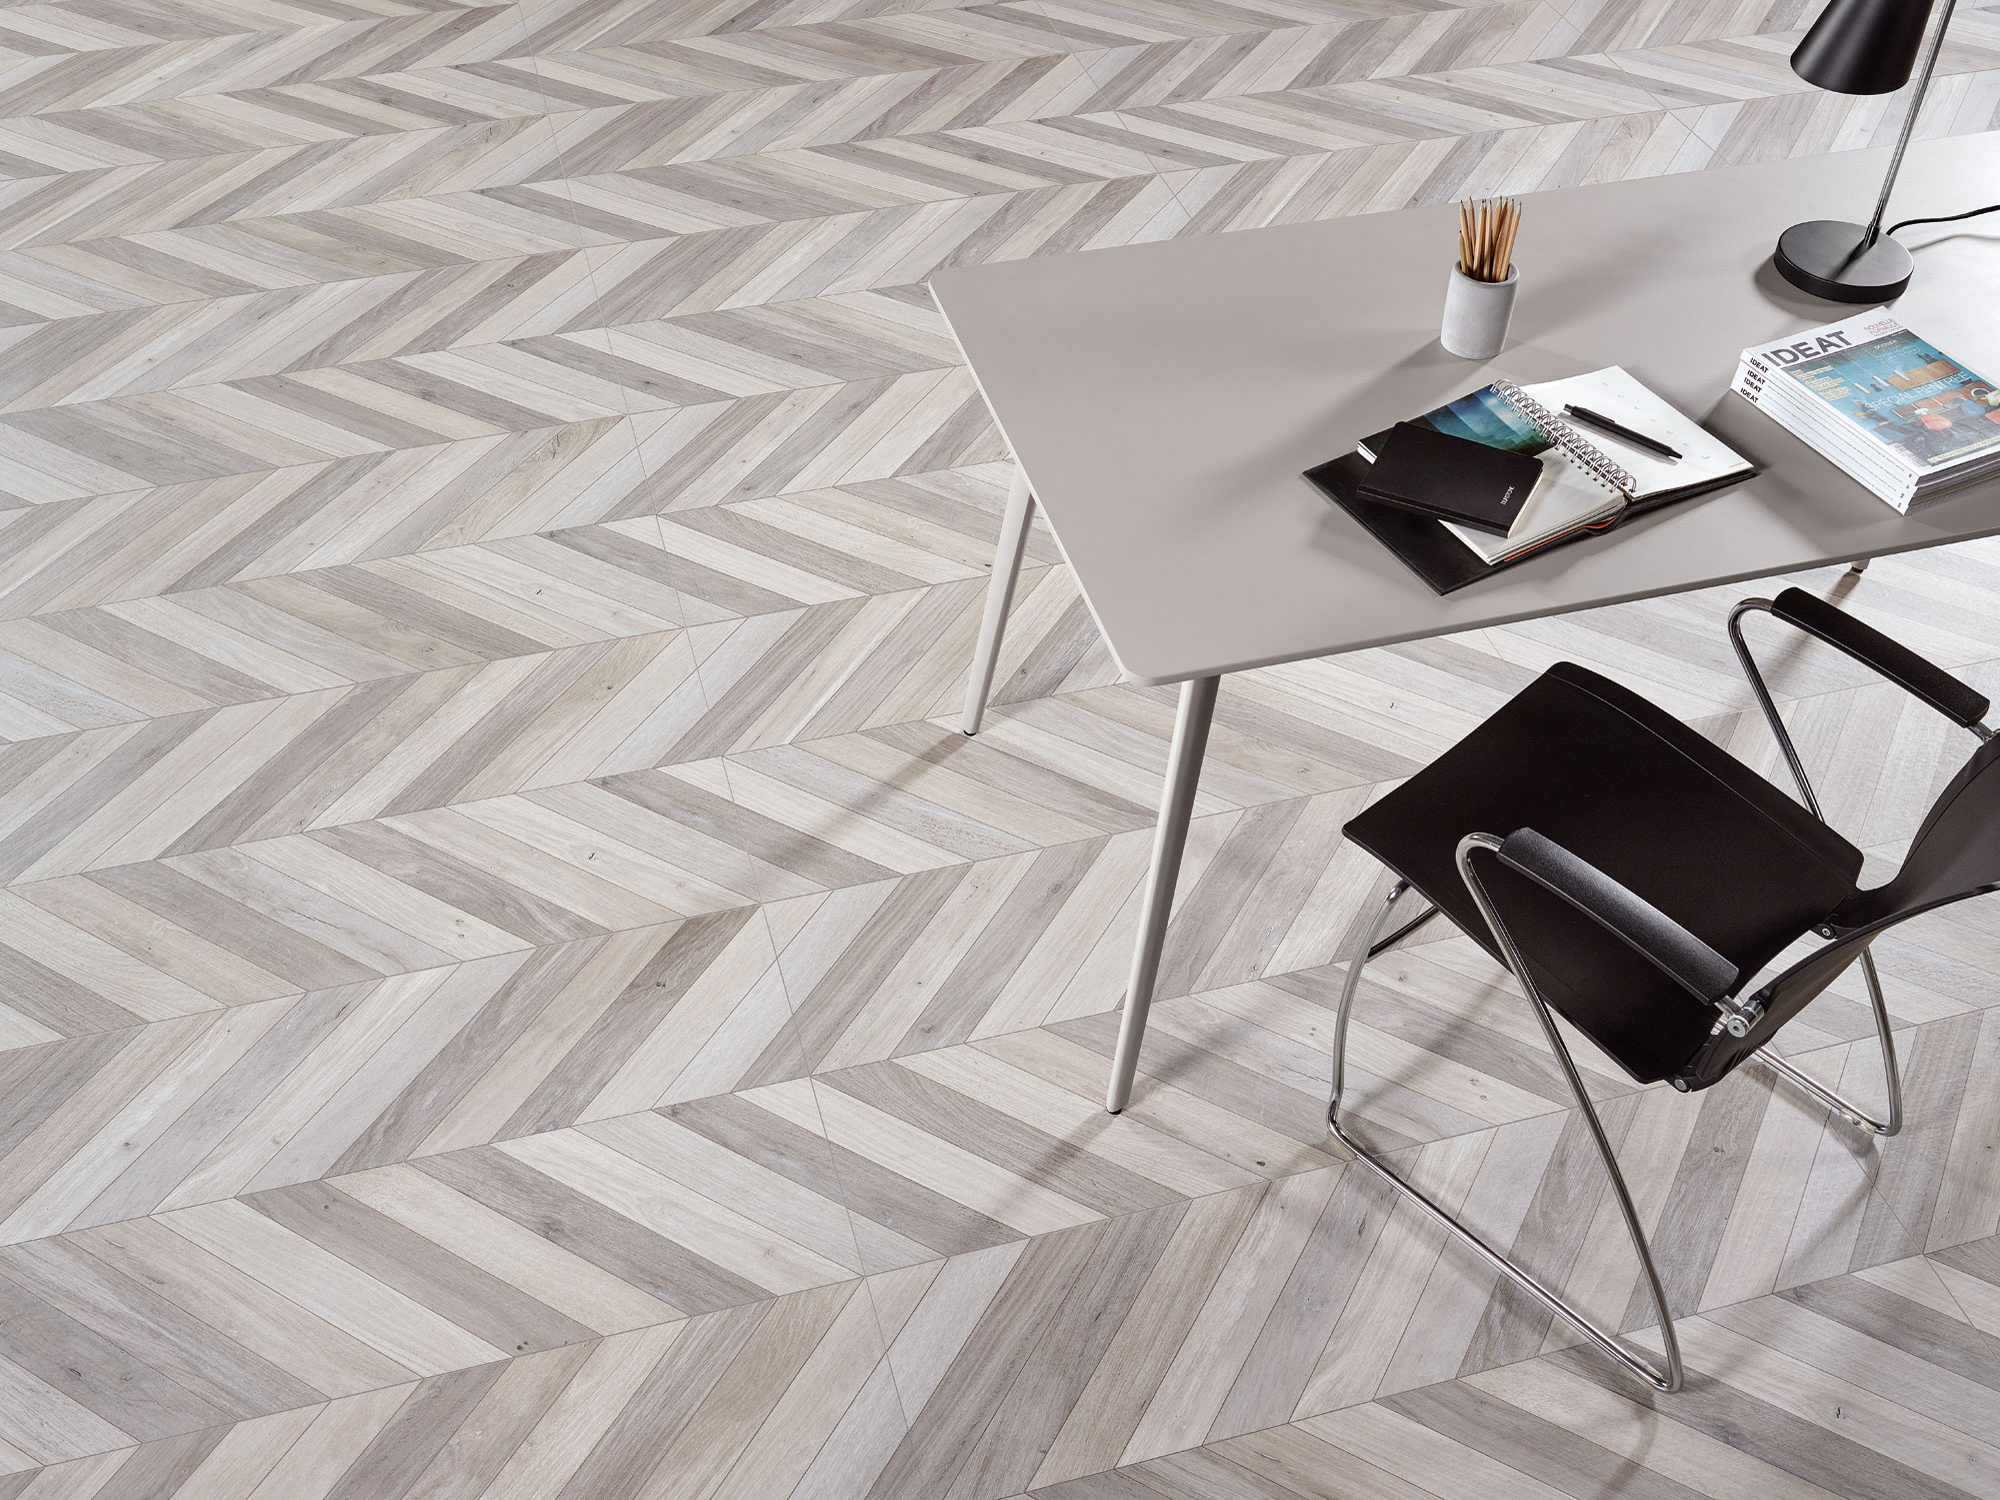 5-pz-floor-chevrons-printemps-natural-60x120.jpg